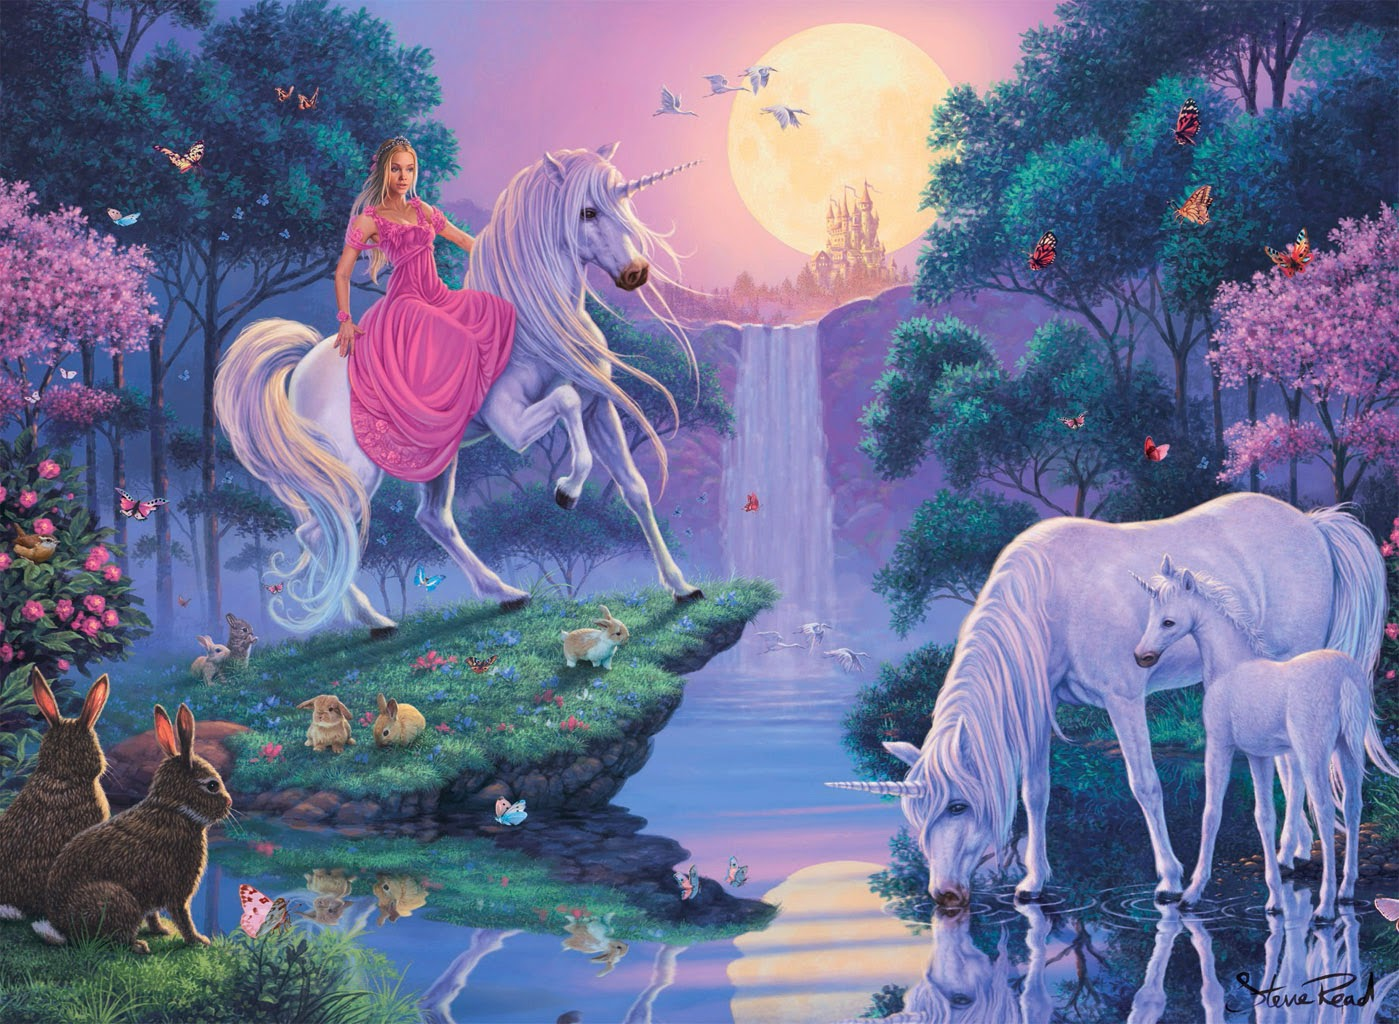 Princess-riding-unicorn-fairy-tale-world-kingdom-images-for-girls-1399x1024.jpg